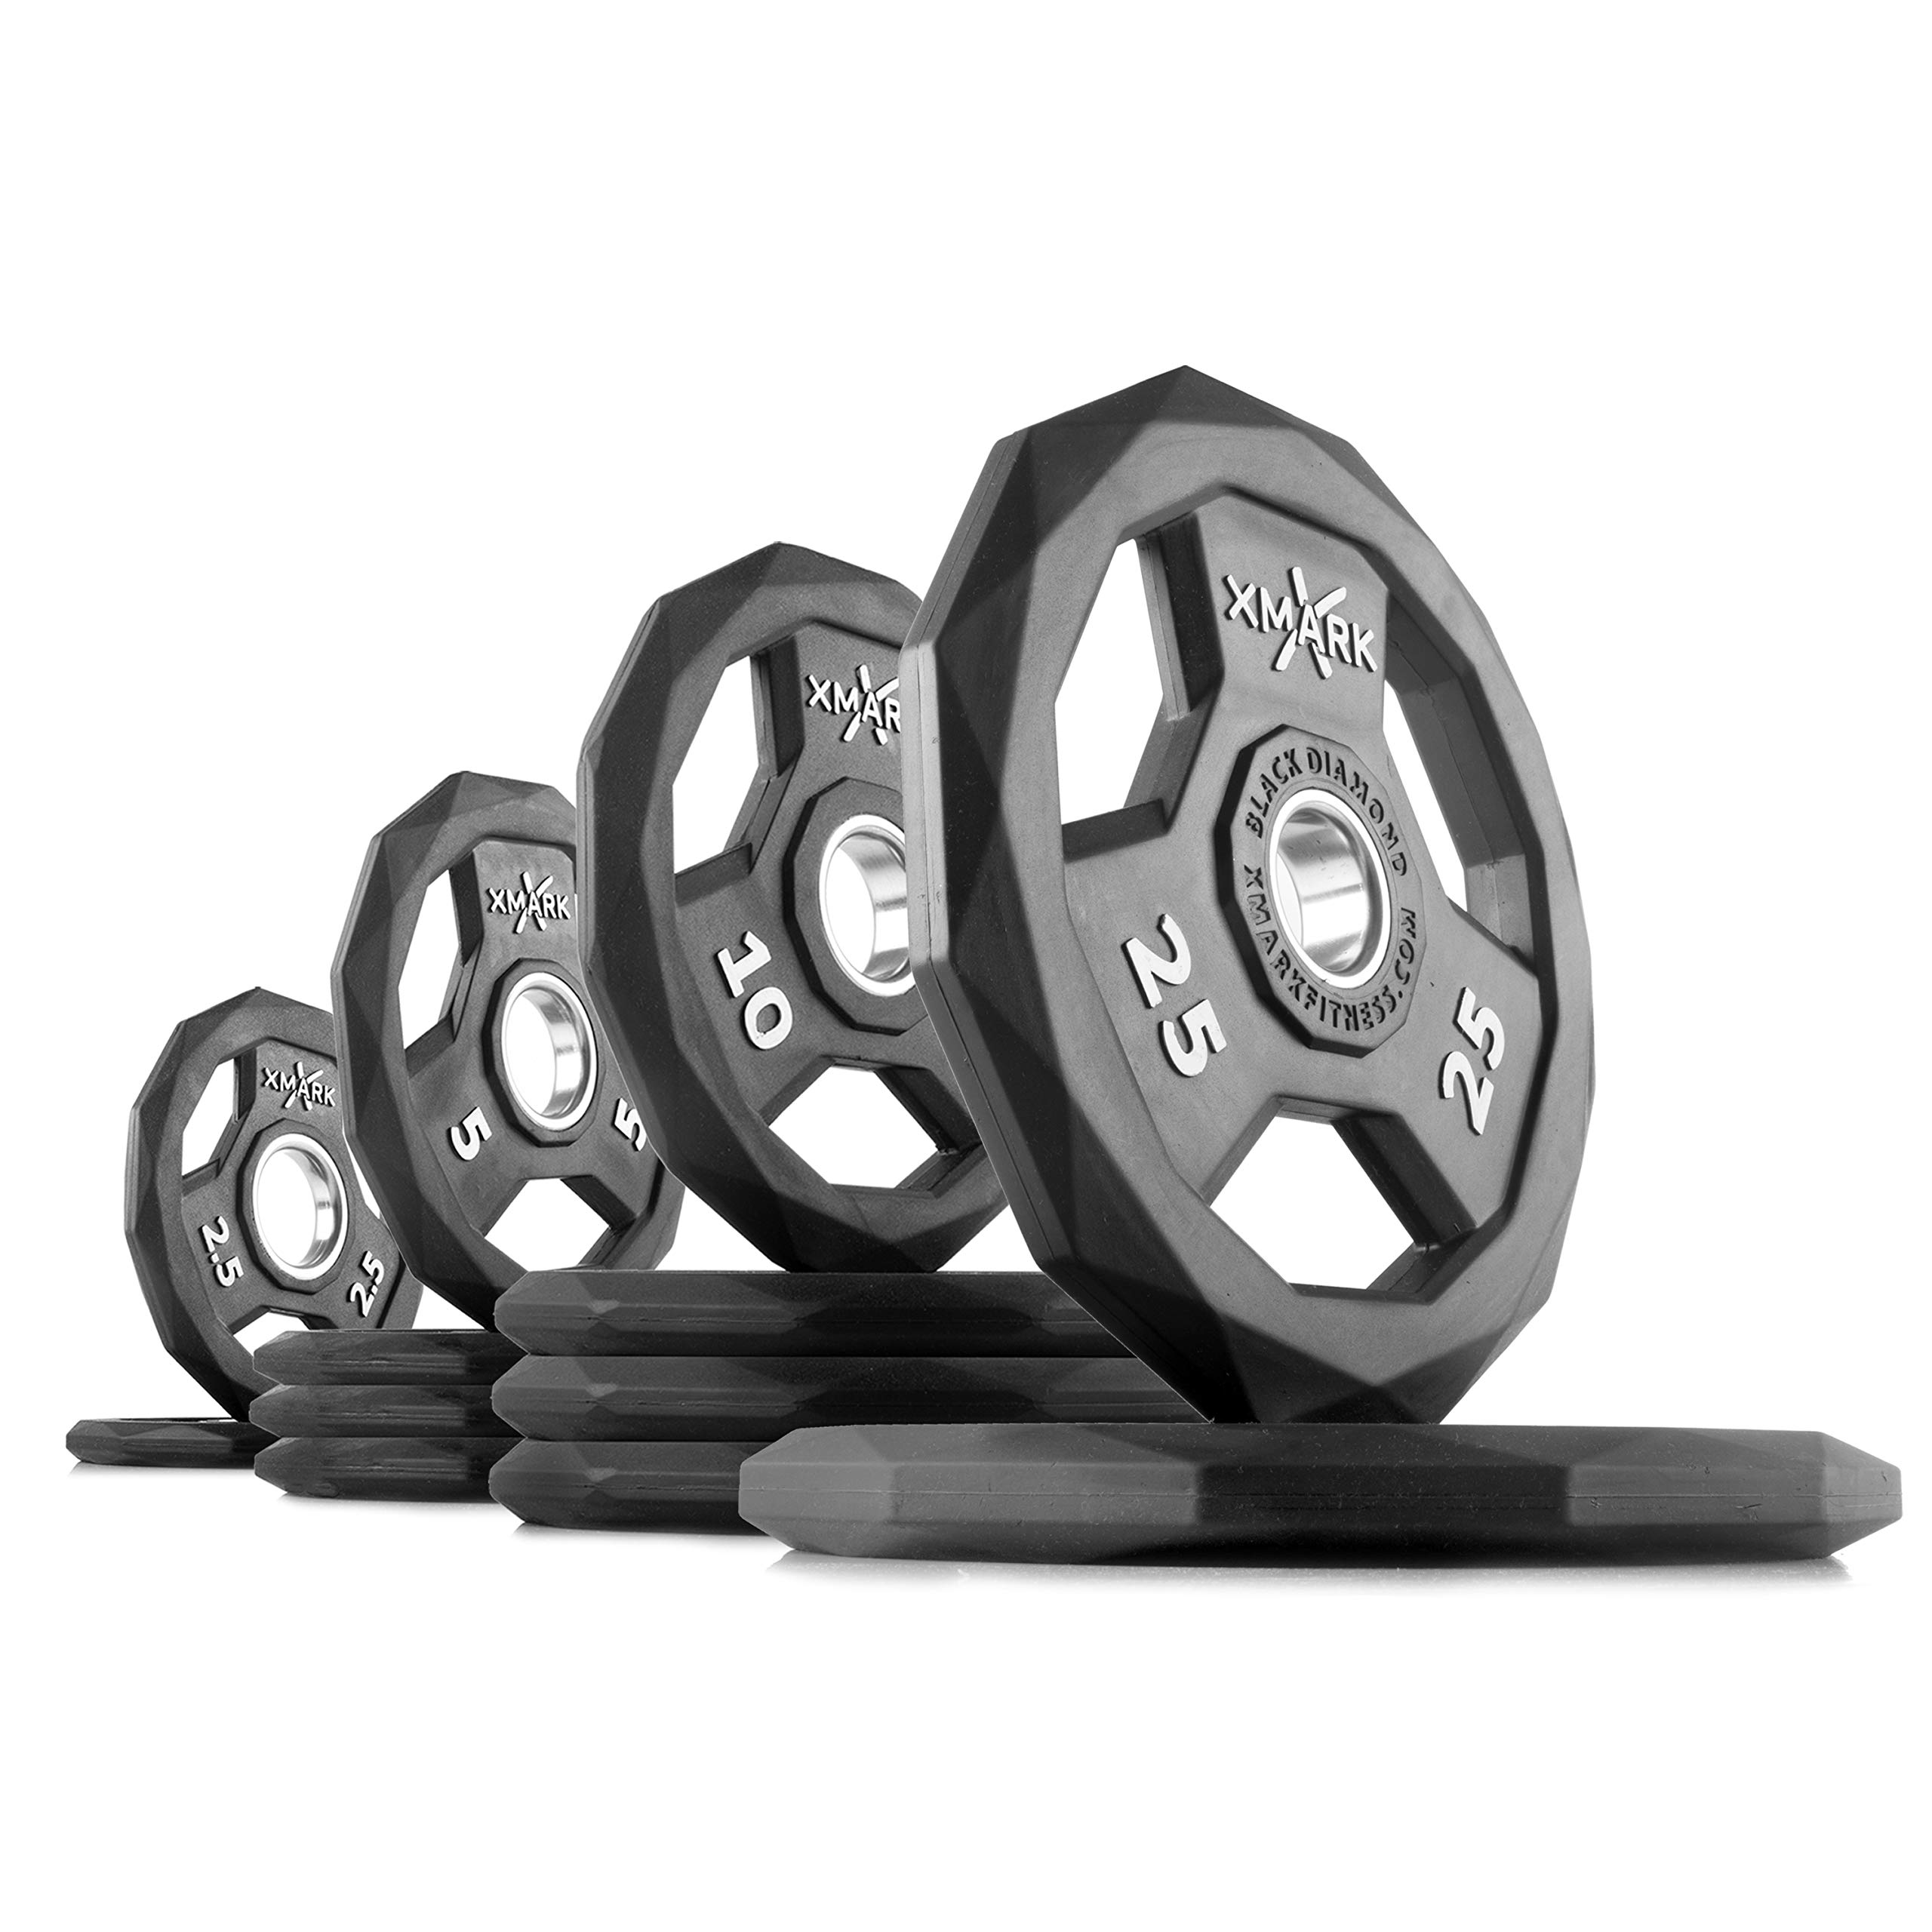 XMark Black Diamond 115 lb Set Olympic Weight Plates, One-Year Warranty, Patented Design